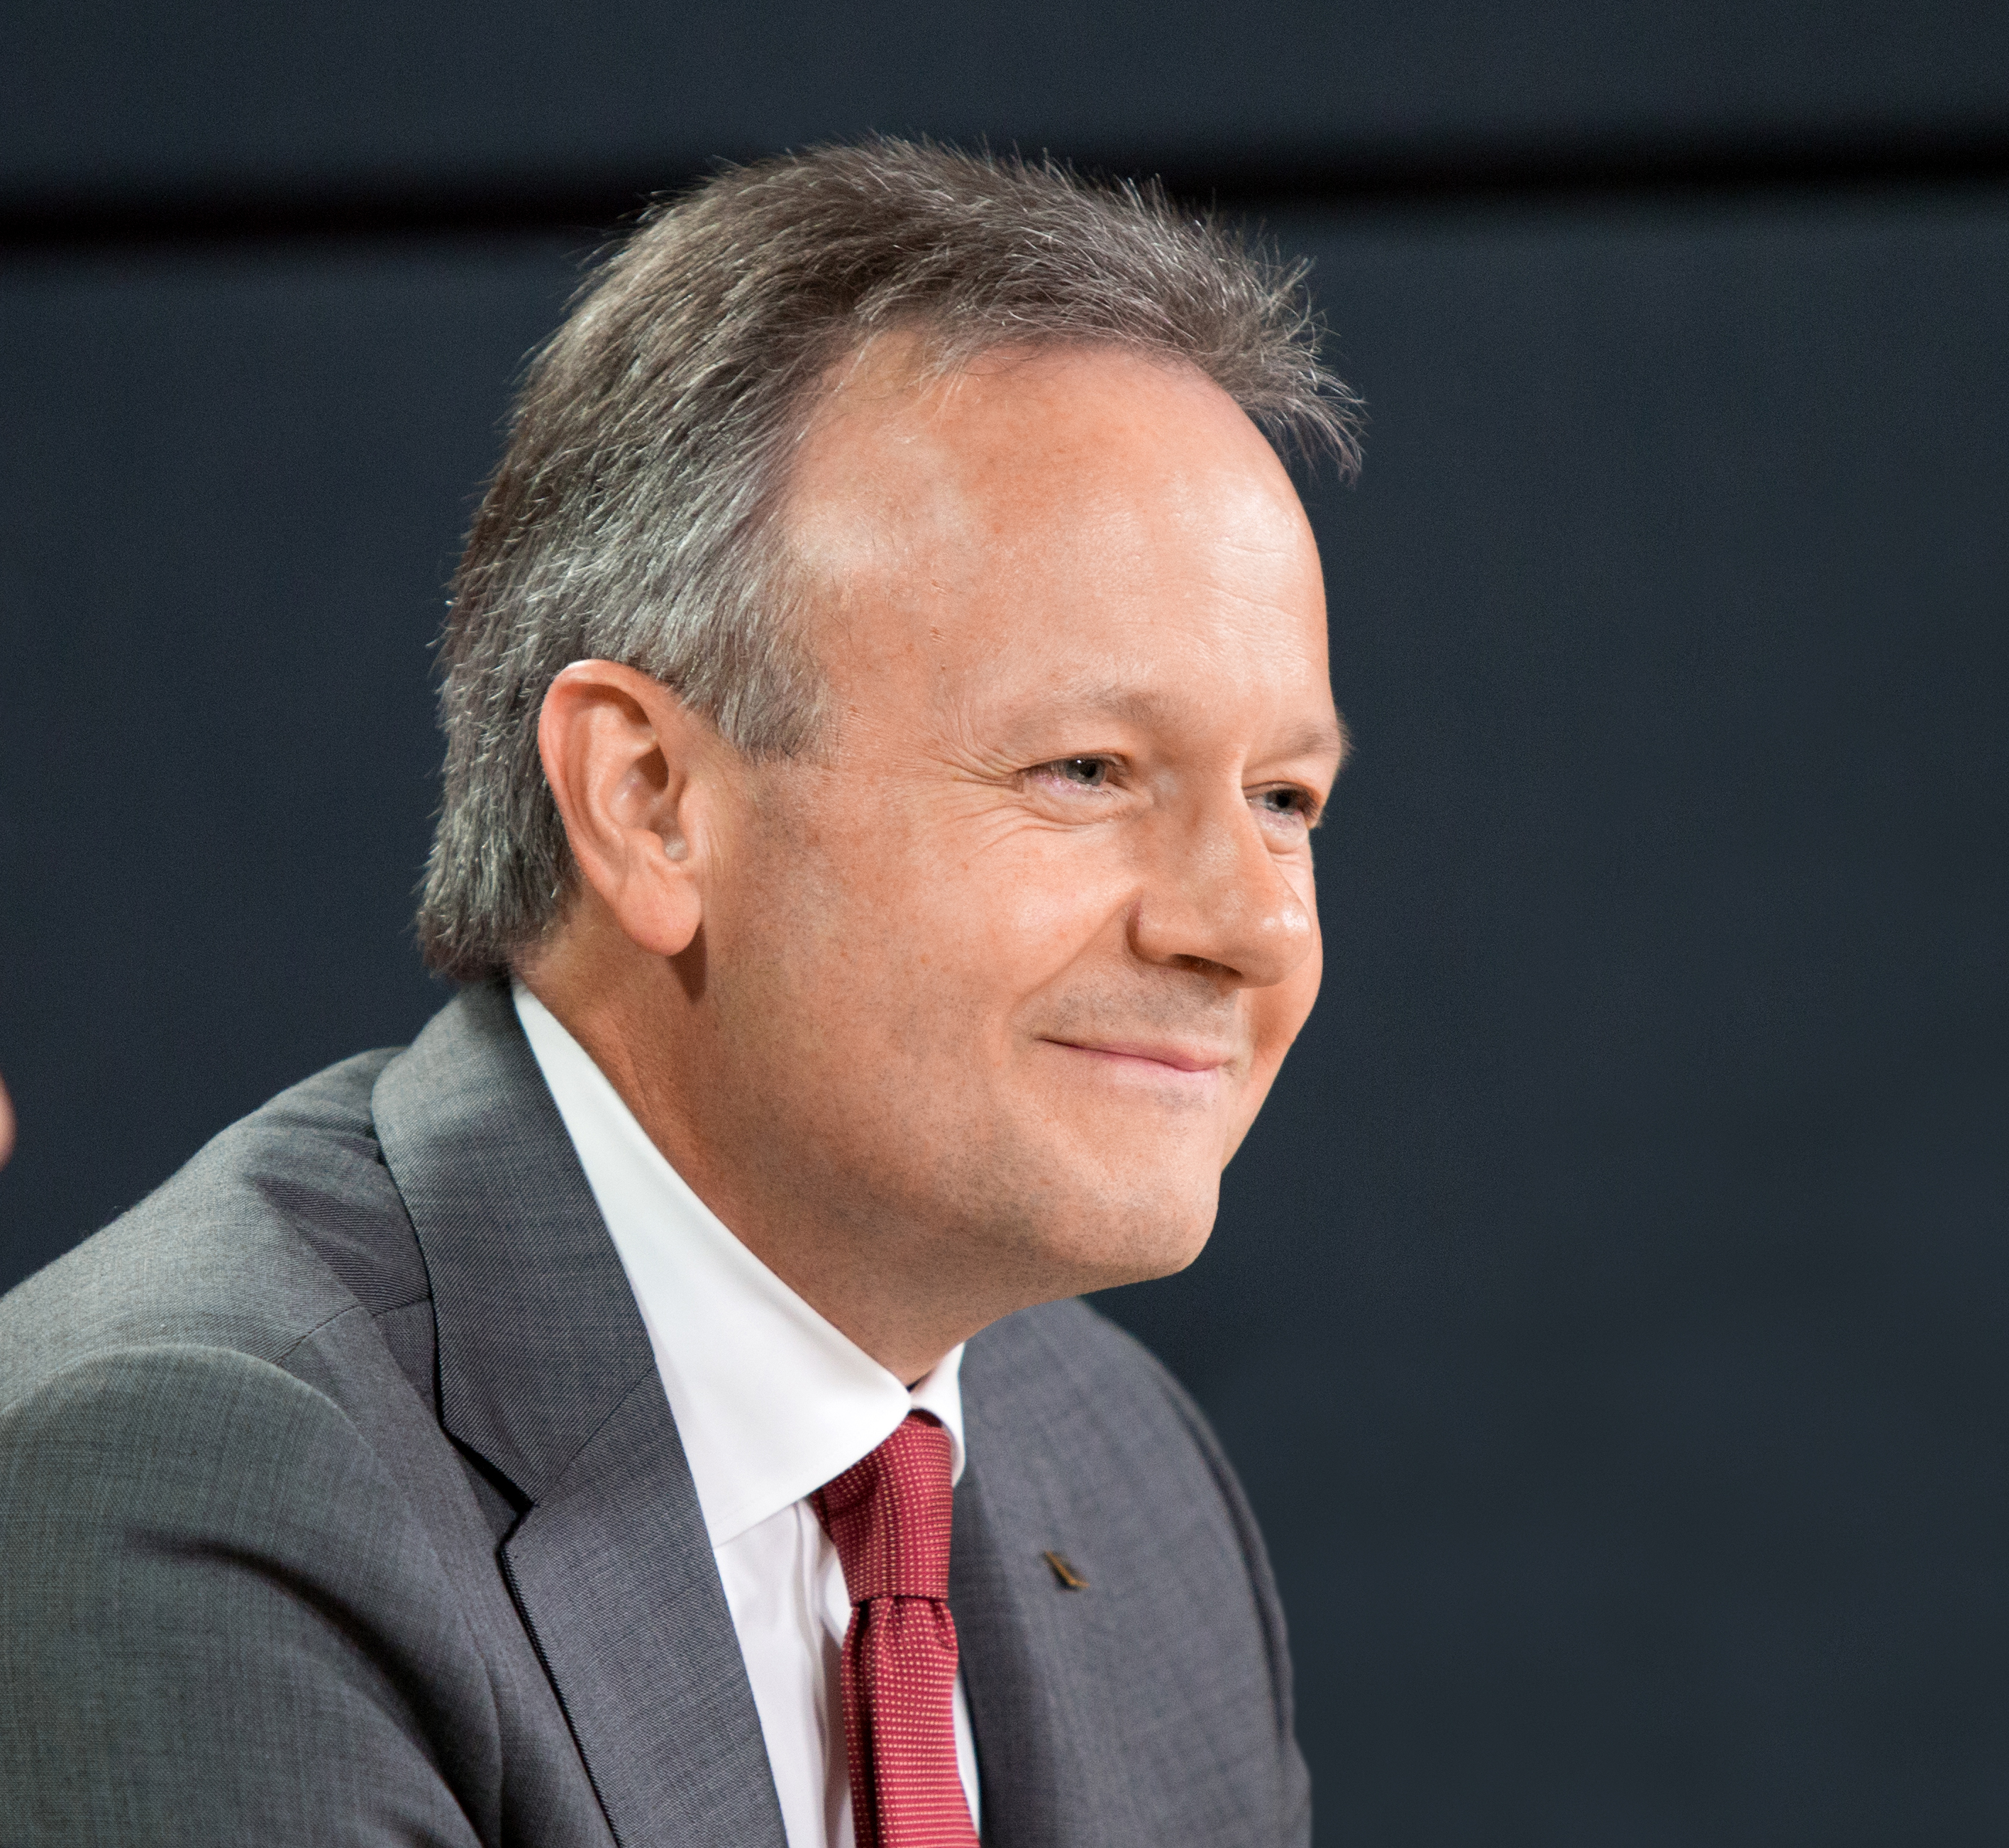 Stephen S. Poloz is the Bank of Canada's ninth Governor.